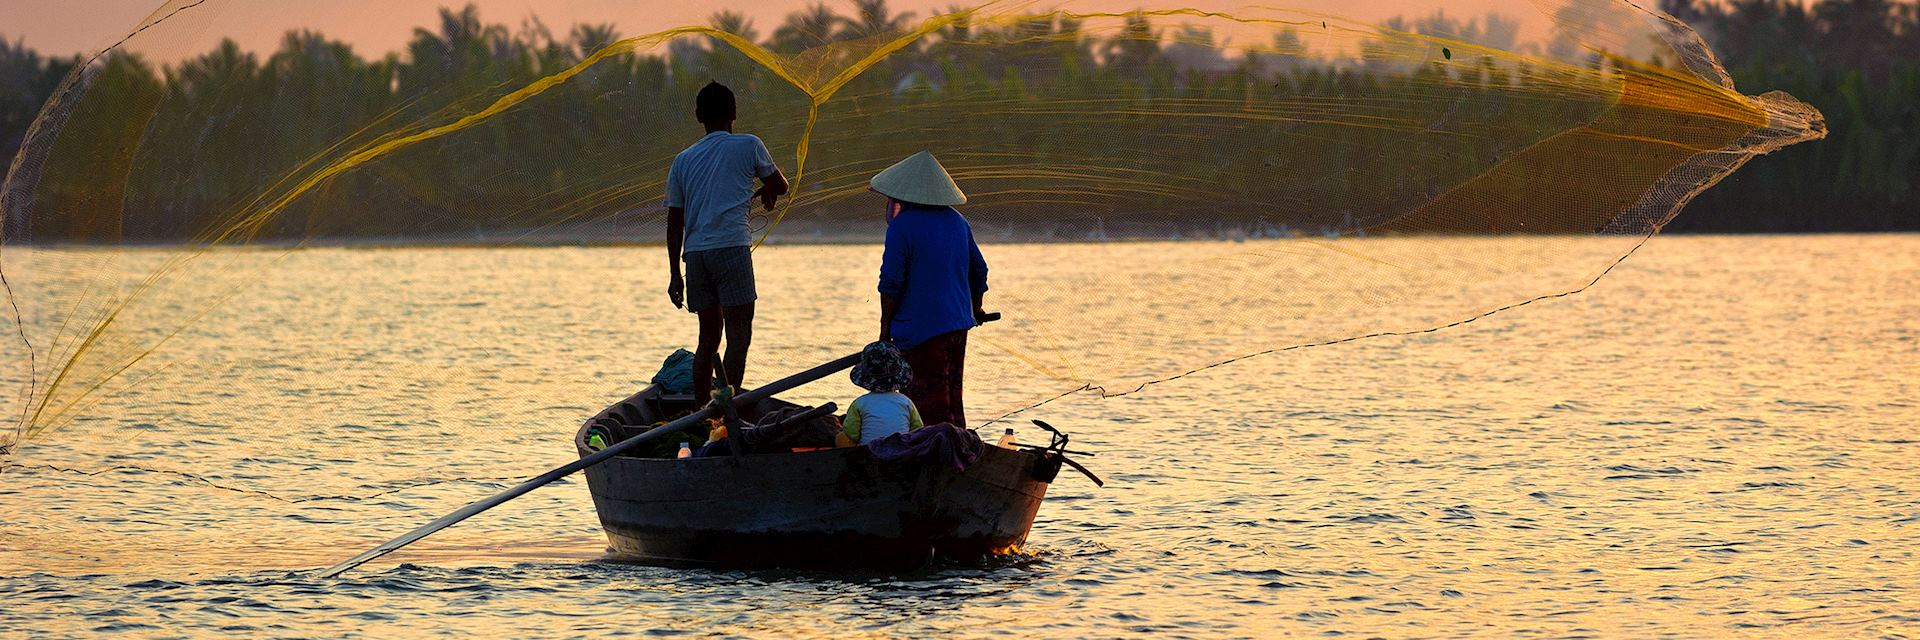 Last catch of the day, Hoi An, Vietnam